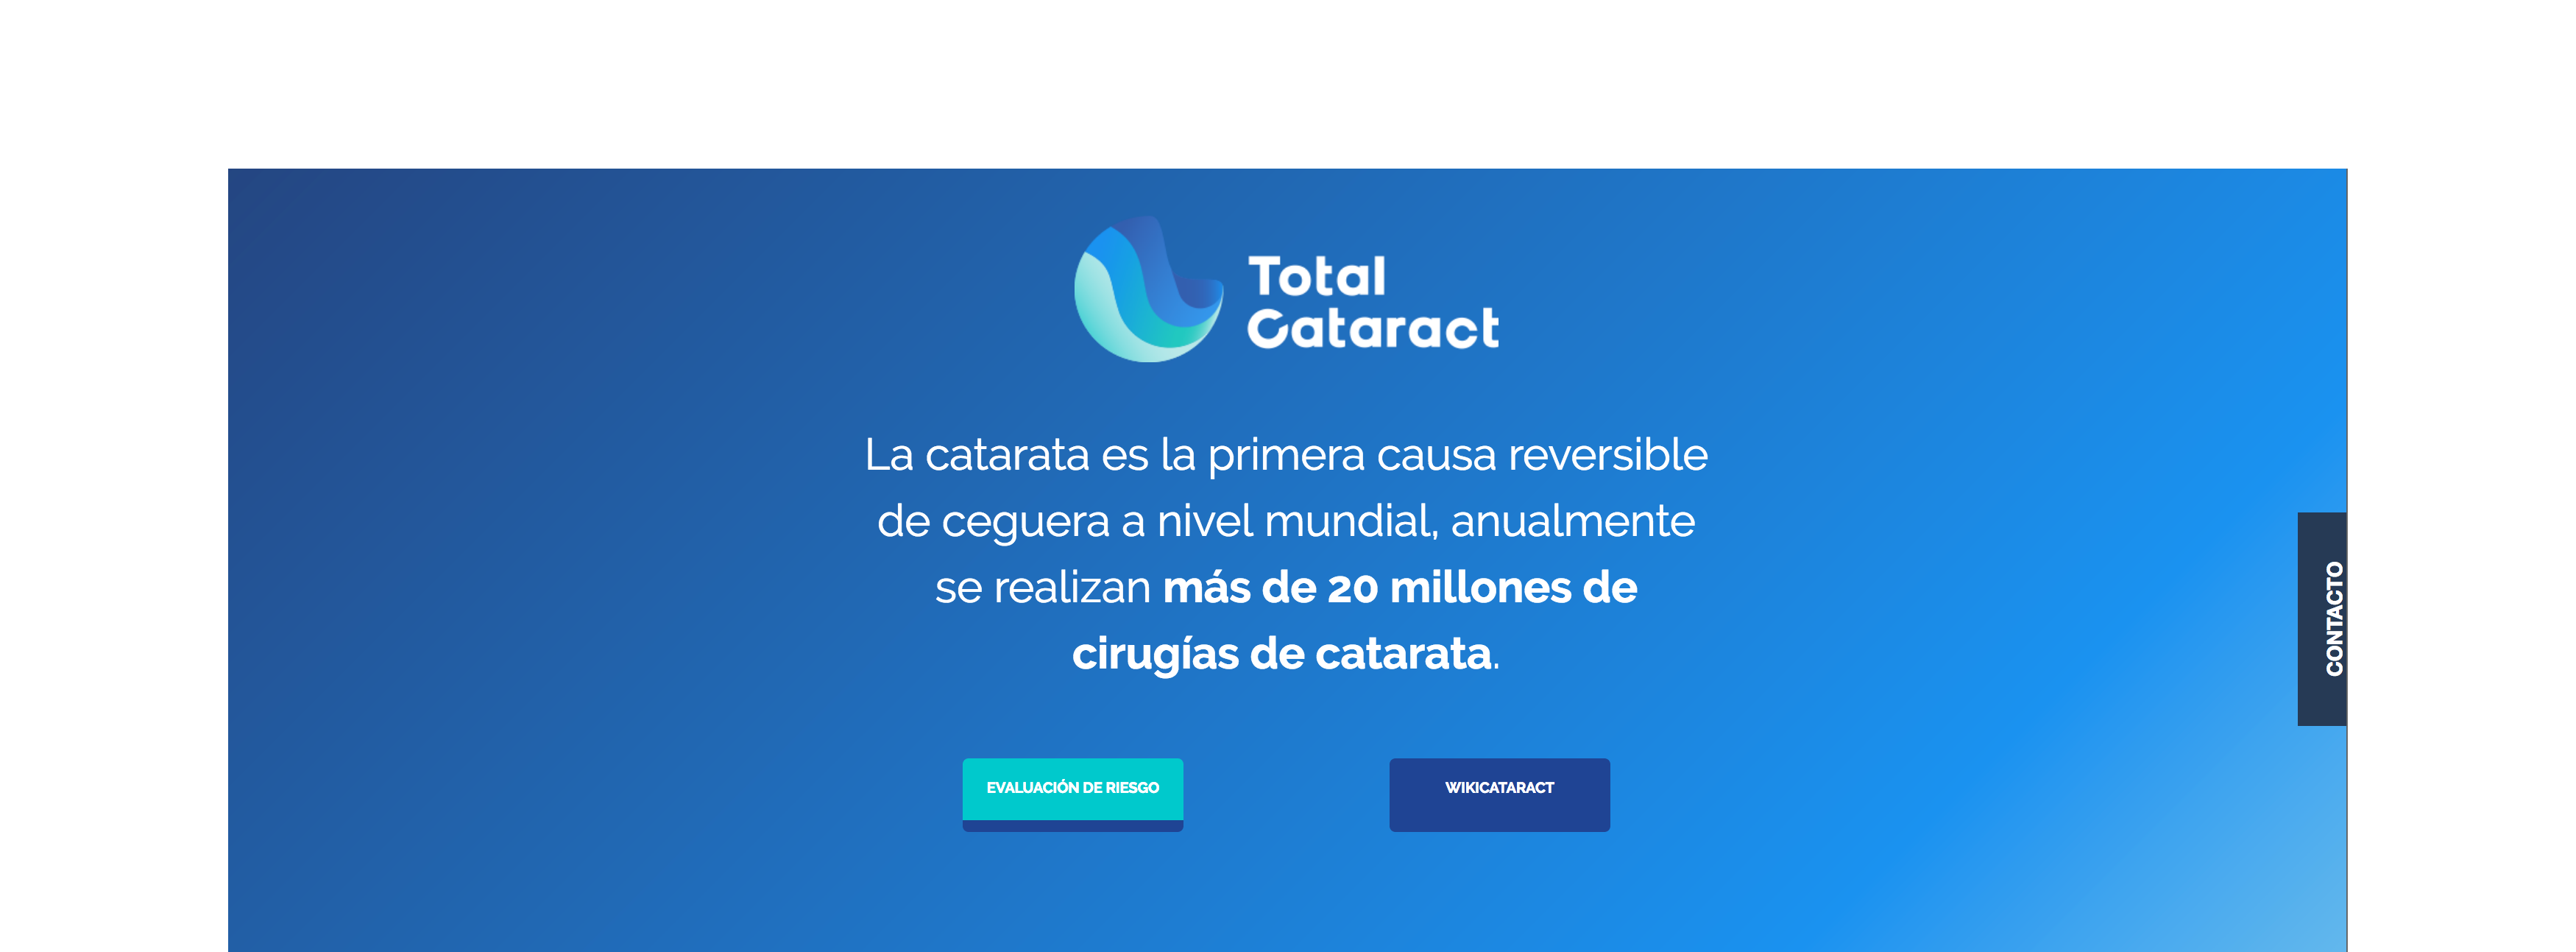 Total Cataract